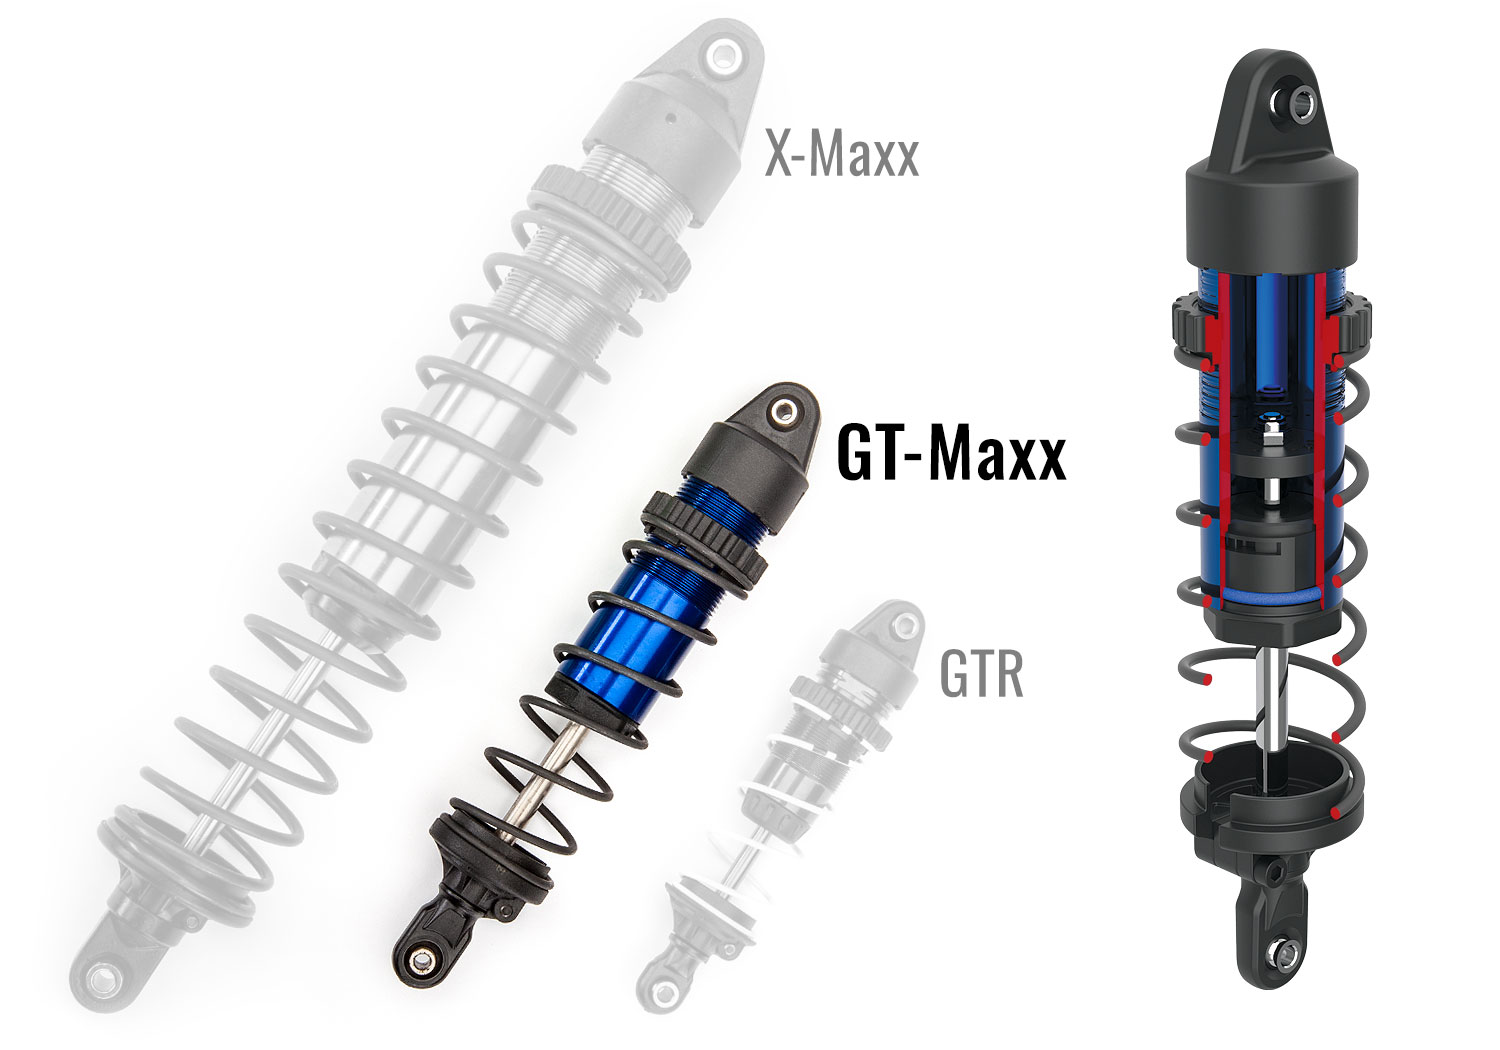 traxxas/GT-MAXX-Shock-Comparison.jpg